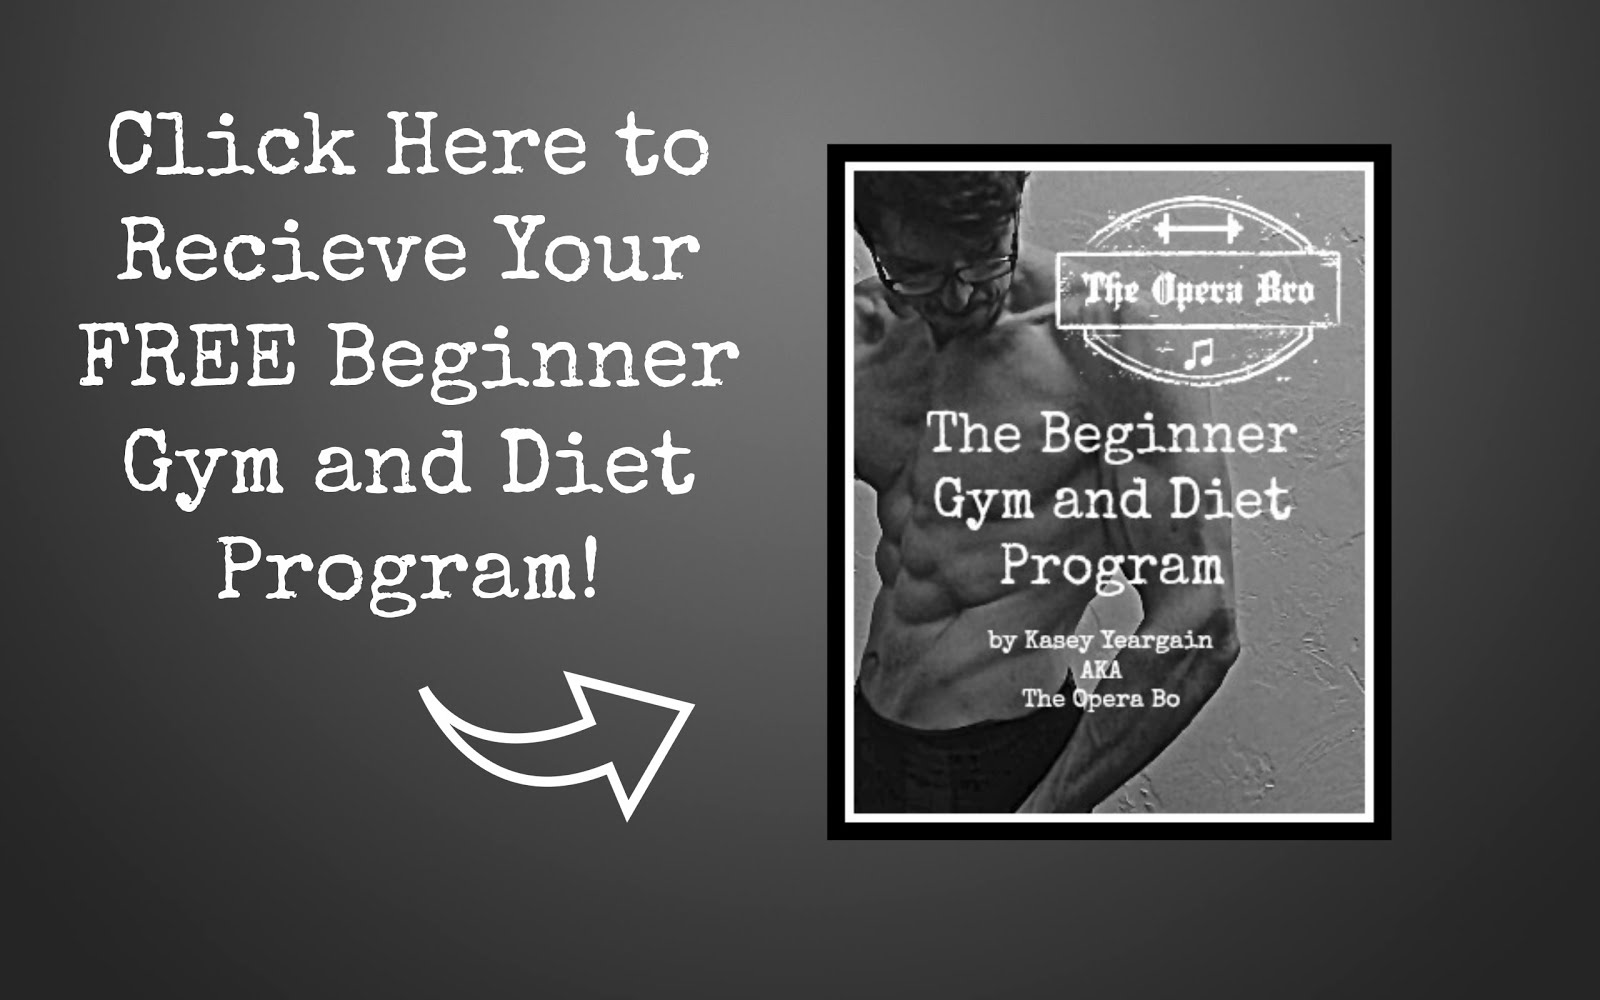 The Free Beginner Gym and Diet Program